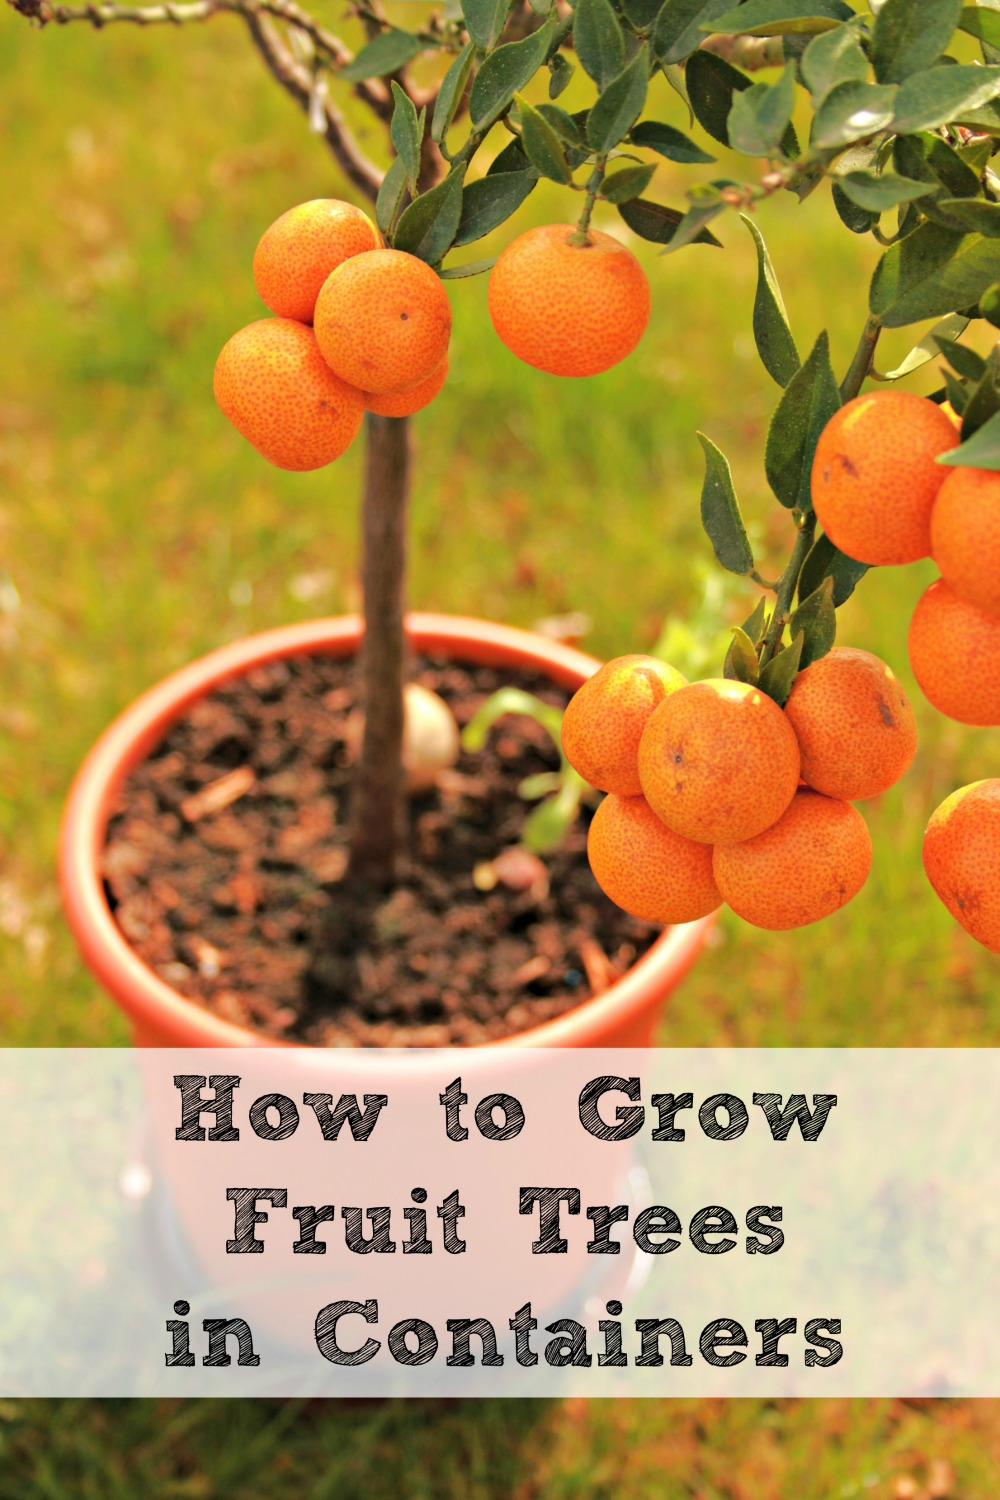 Learn How to Grow Fruit Trees in Containers